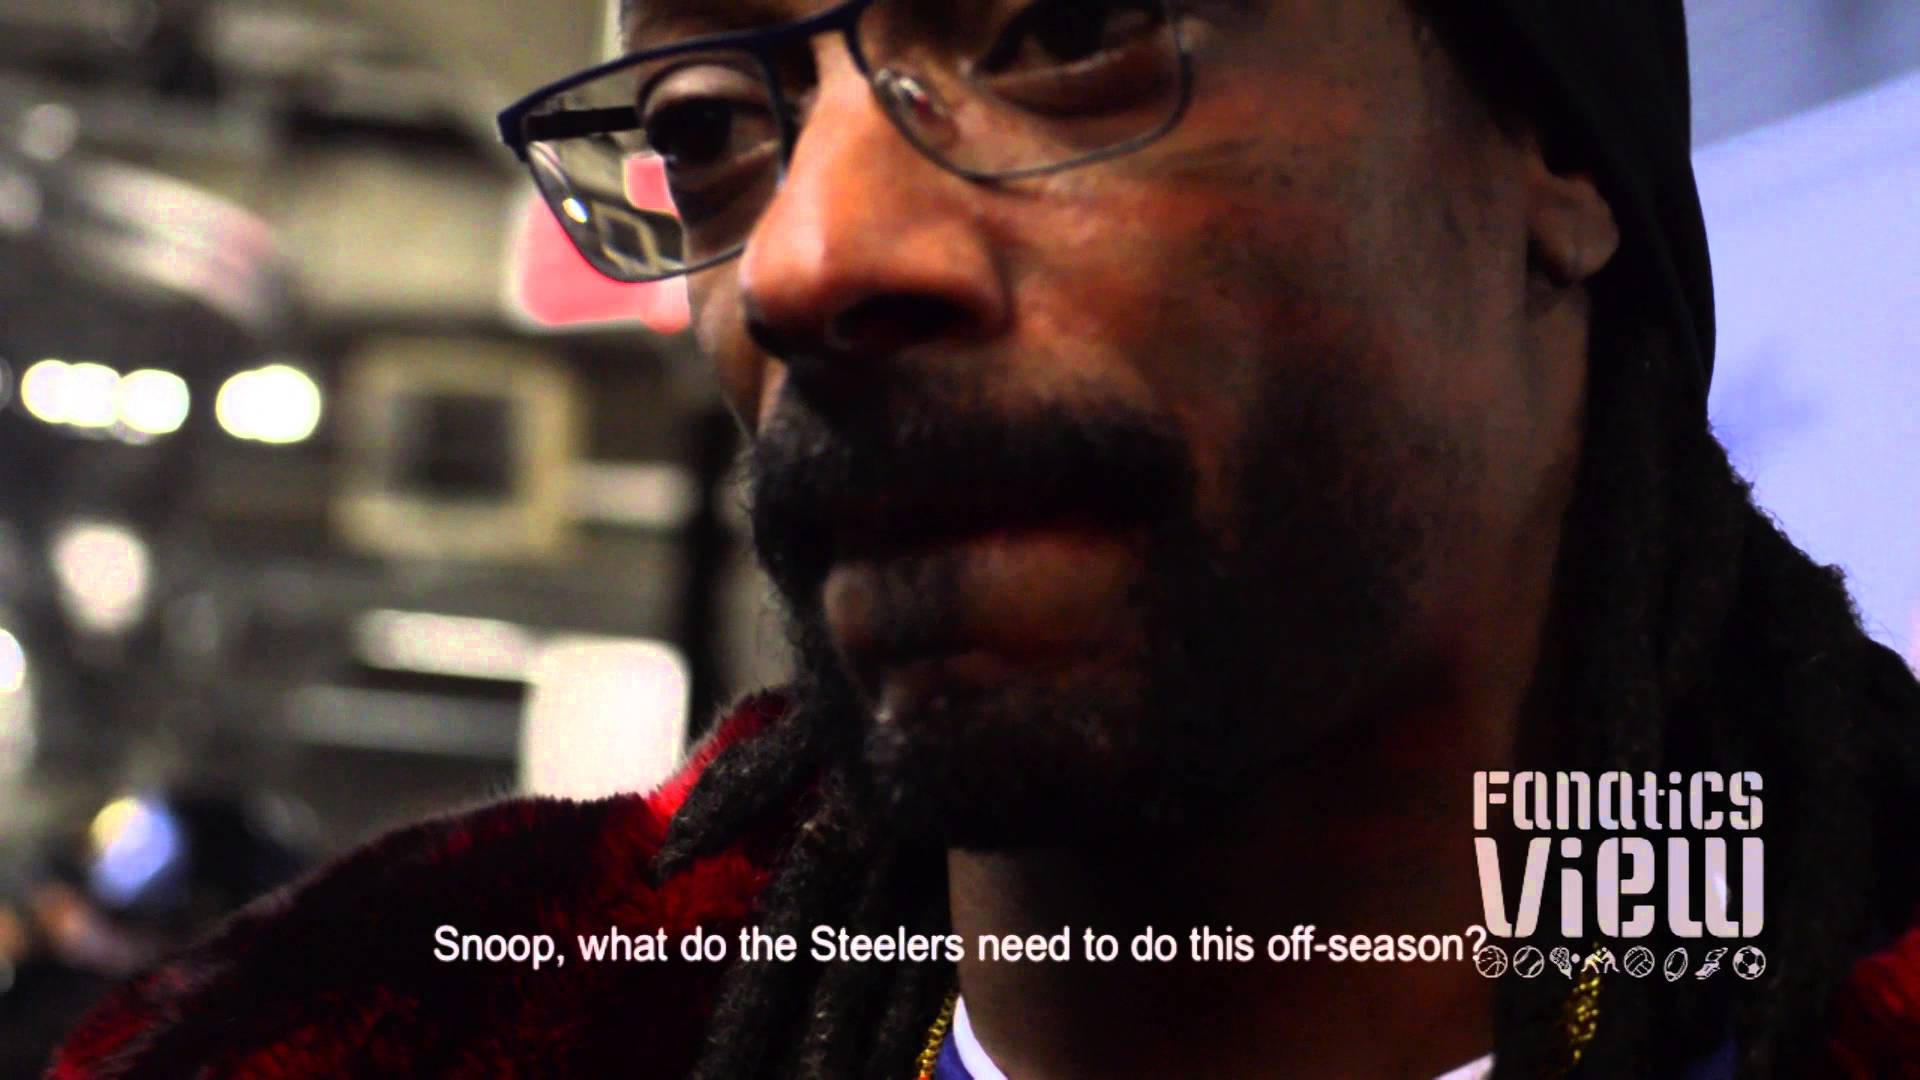 FV Exclusive: Snoop Dogg says the Pittsburgh Steelers need to hire him